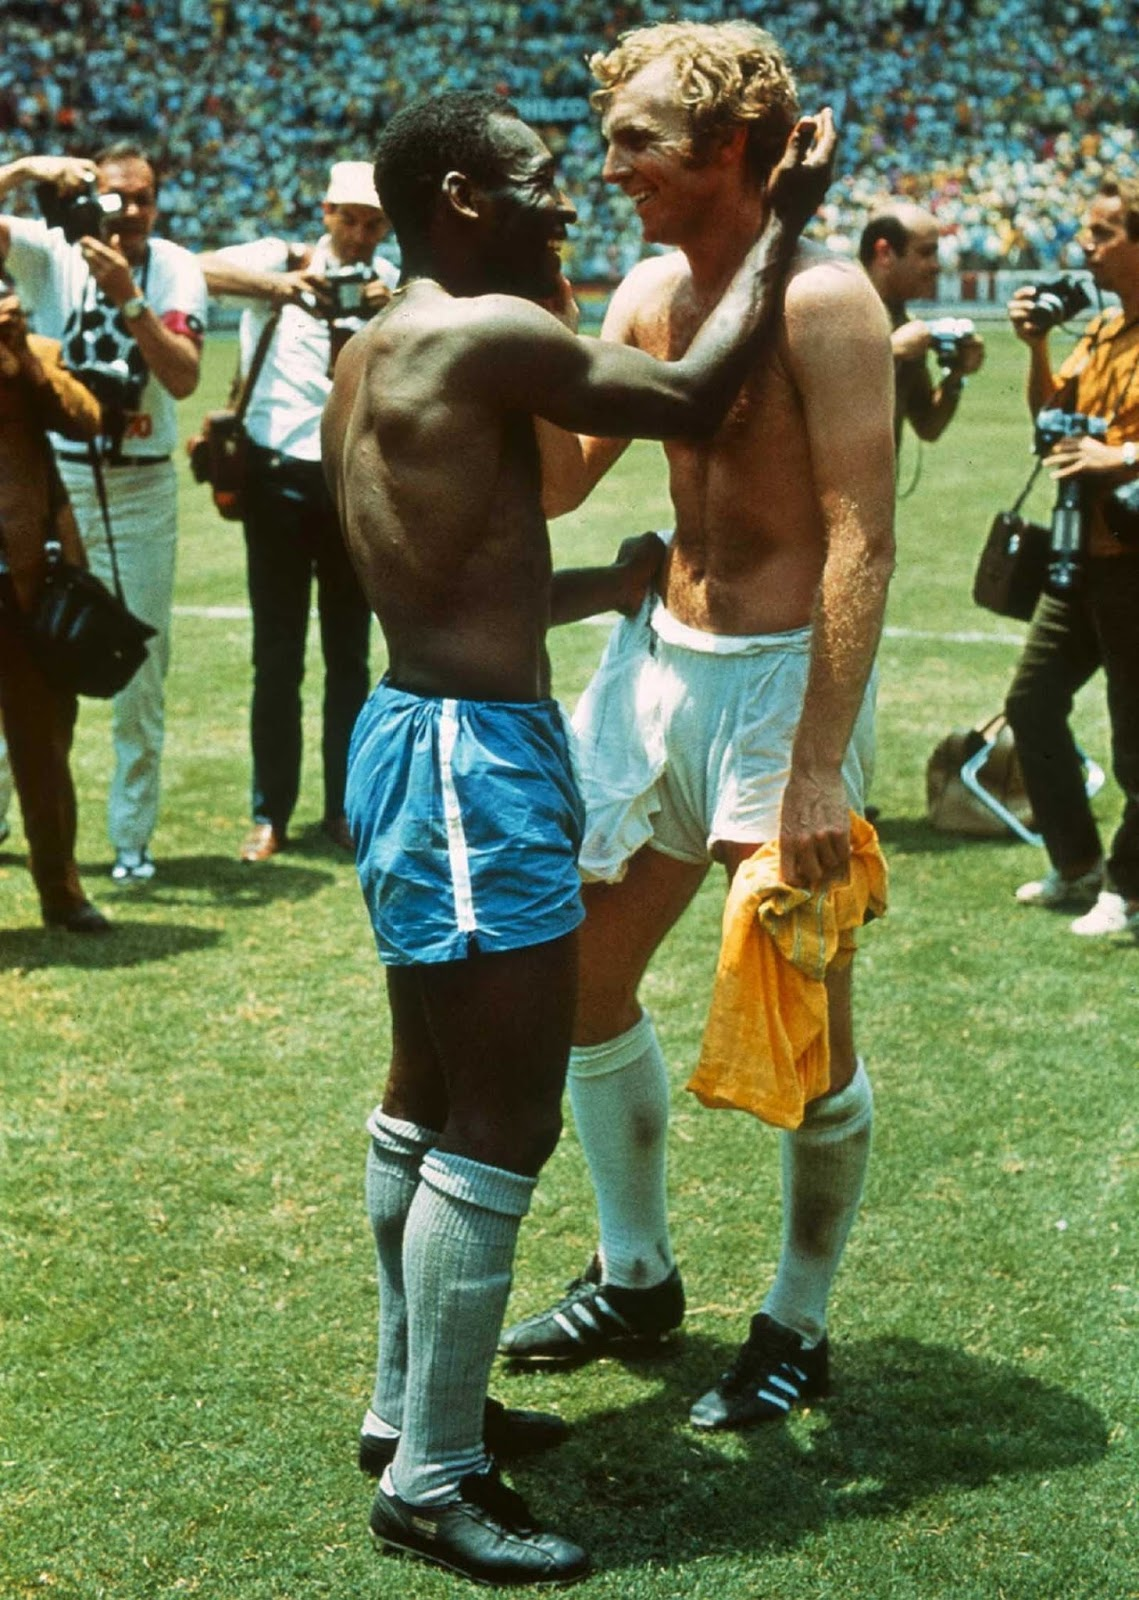 Brazil beat England 1-0 in the group stages, the game featuring a number of personal battles between Moore and Brazilian superstar Pele. This exchange between the two after the match says it all about their mutual respect